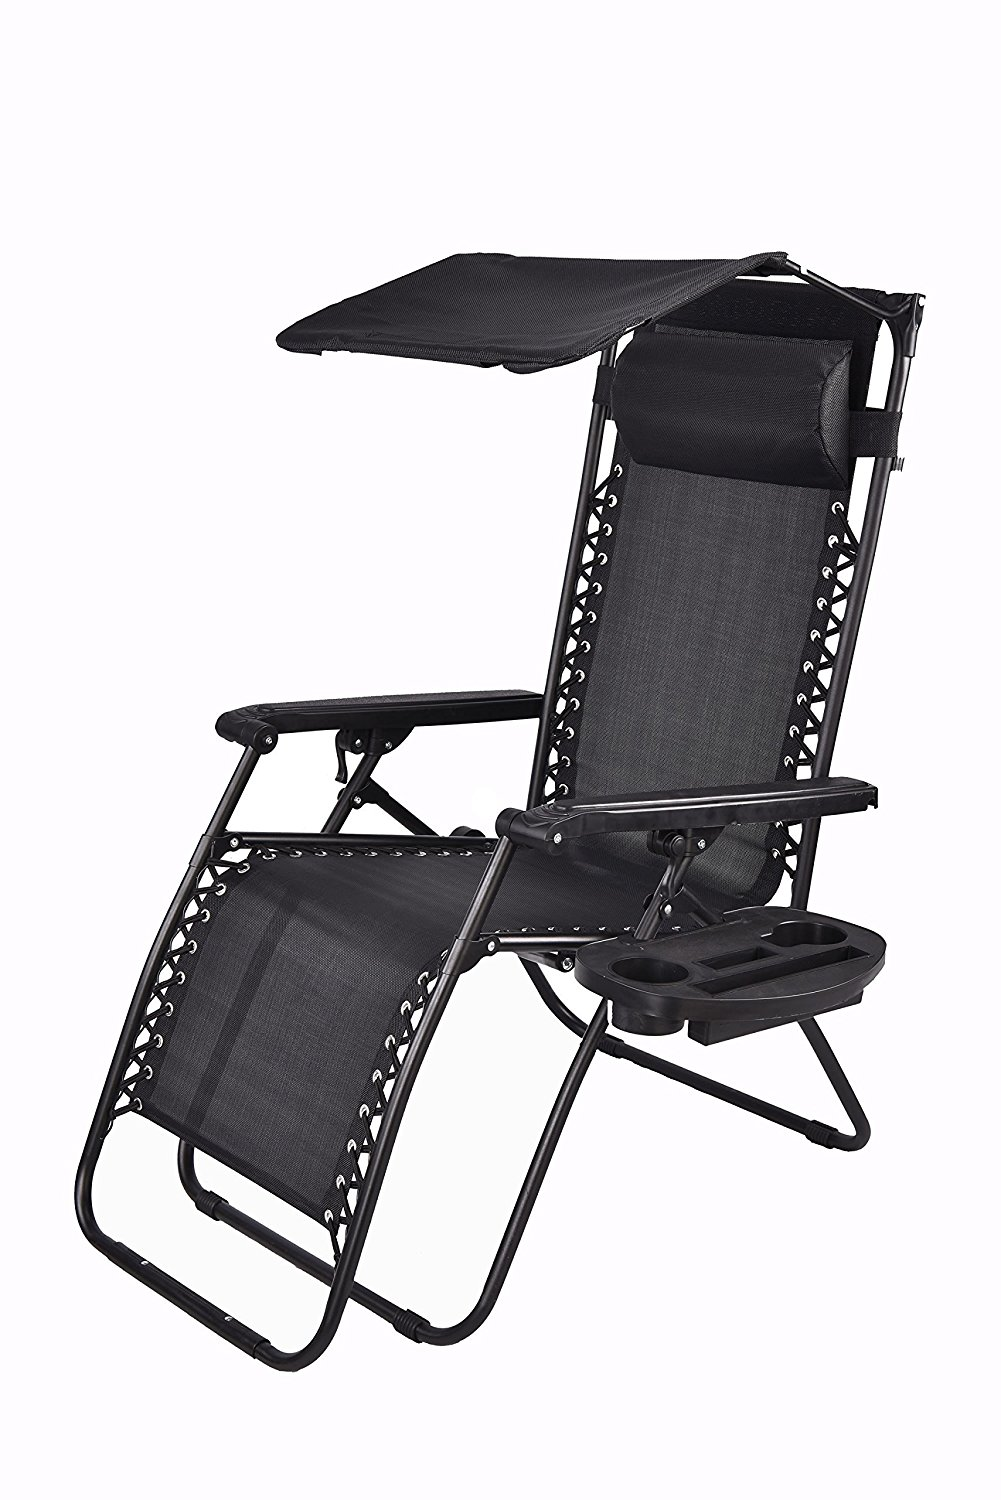 Zero gravity Chair with Canopy Sunshade Utility Tray Cup Holder Black